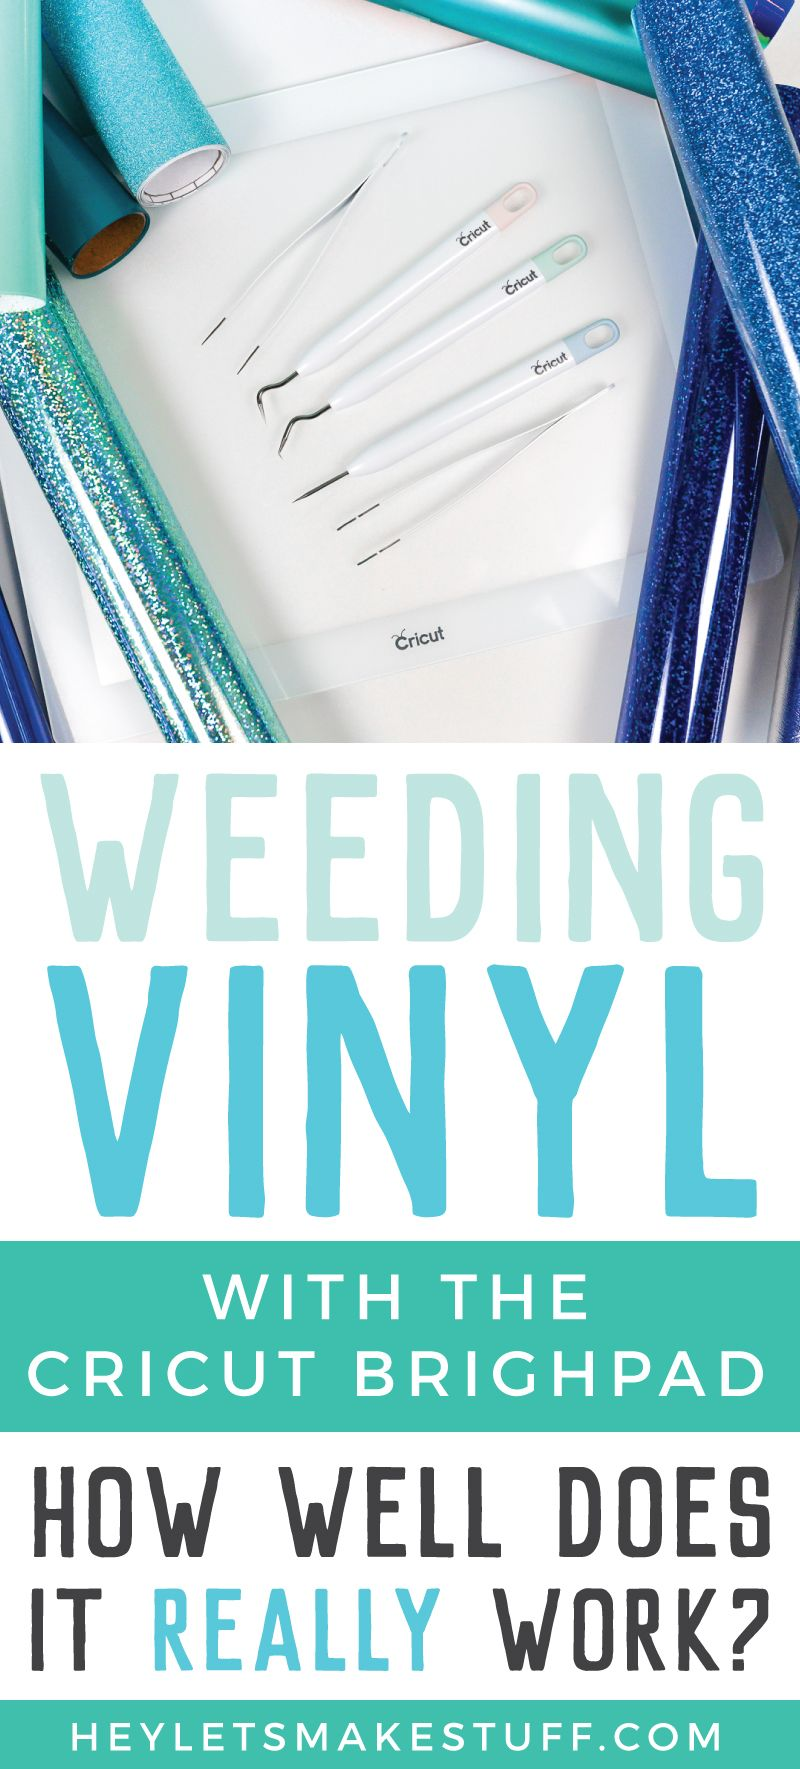 The Cricut Brightpad Is Designed To Help Make Weeding Vinyl Easier We Put It To The Test Here S How It Fared On More Than A Dozen Different Adhesive And Iron O Cricut